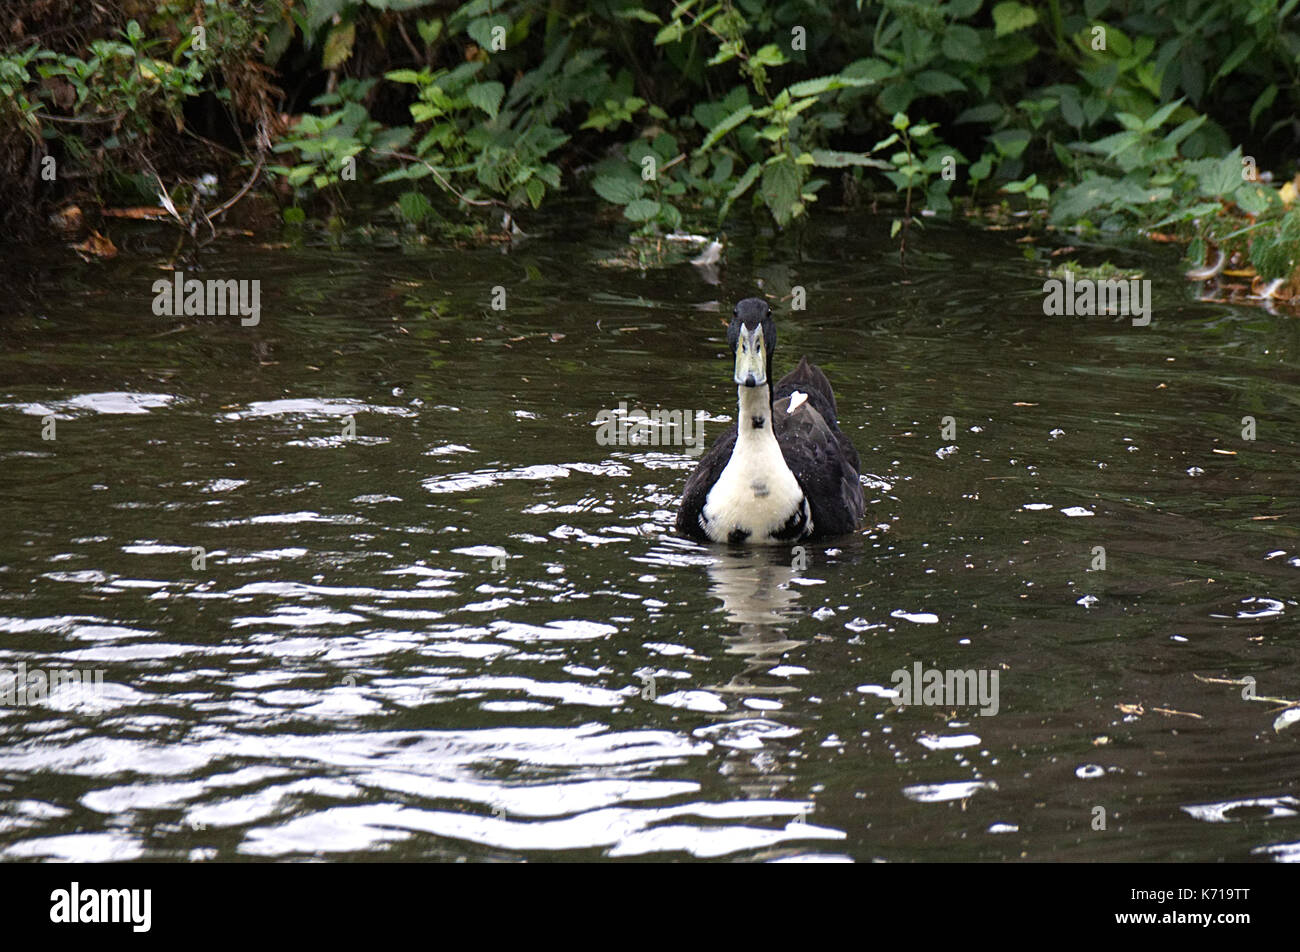 Unusual black and white mallard duck sometimes known as a hybrid or